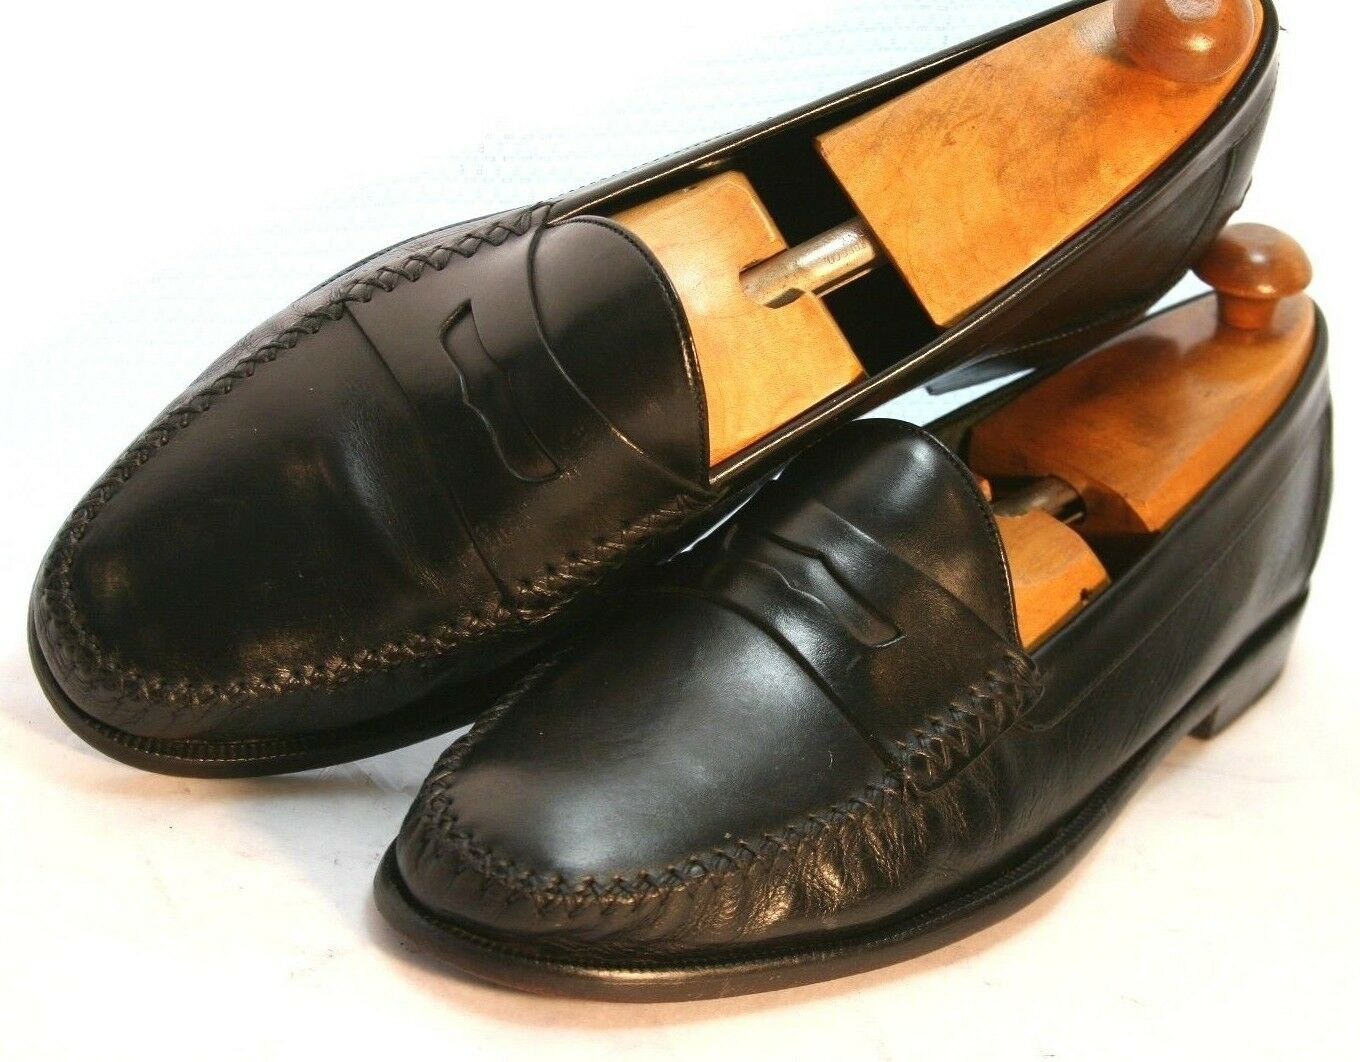 COLE HAAN  RESORT  BLACK LEATHER PENNY LOAFERS DRIVING SHOES 12 D